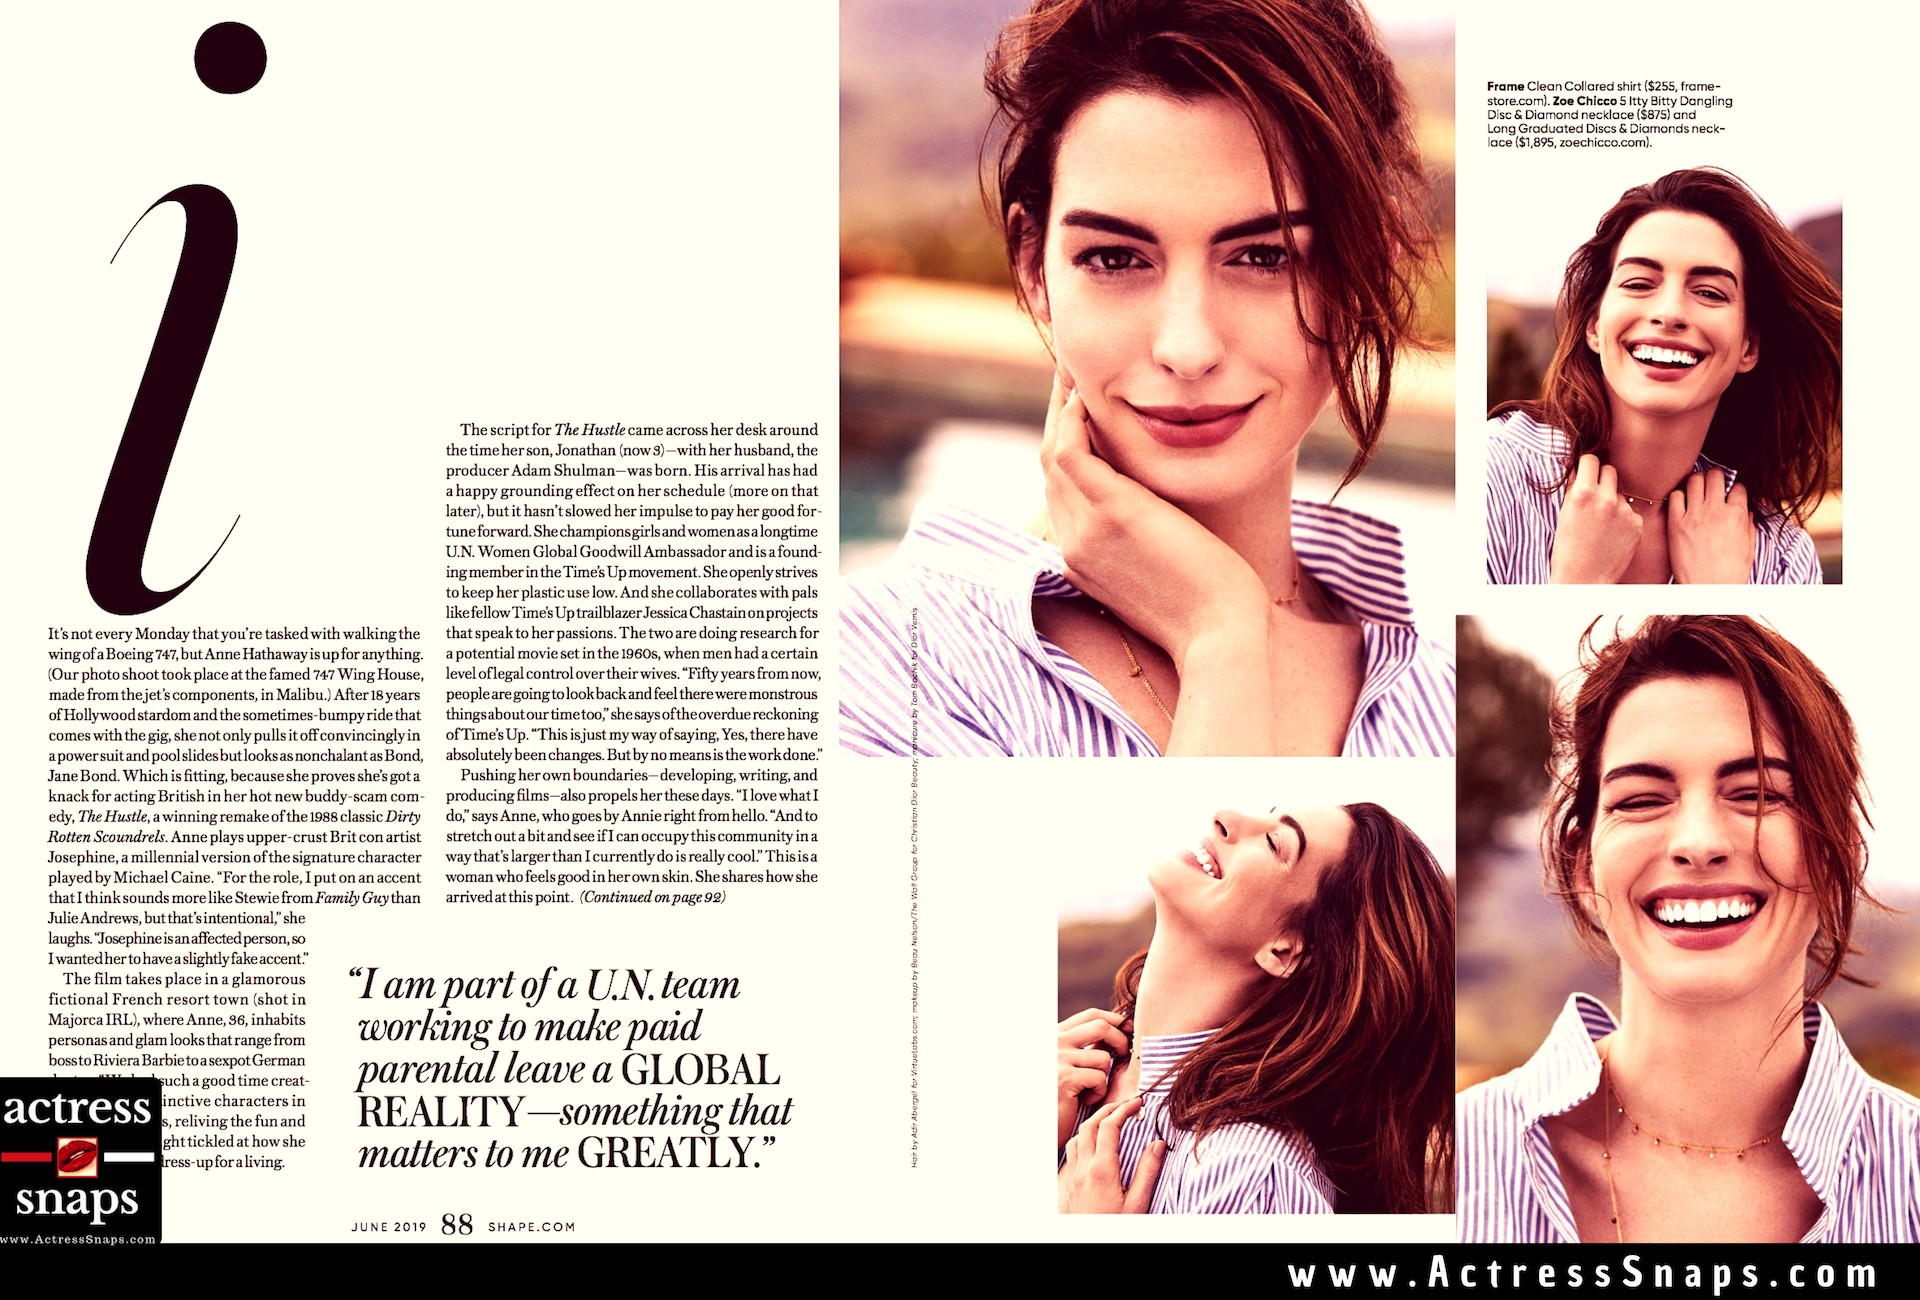 Sexy Anne Hathaway in SHAPE Magazine - Sexy Actress Pictures | Hot Actress Pictures - ActressSnaps.com